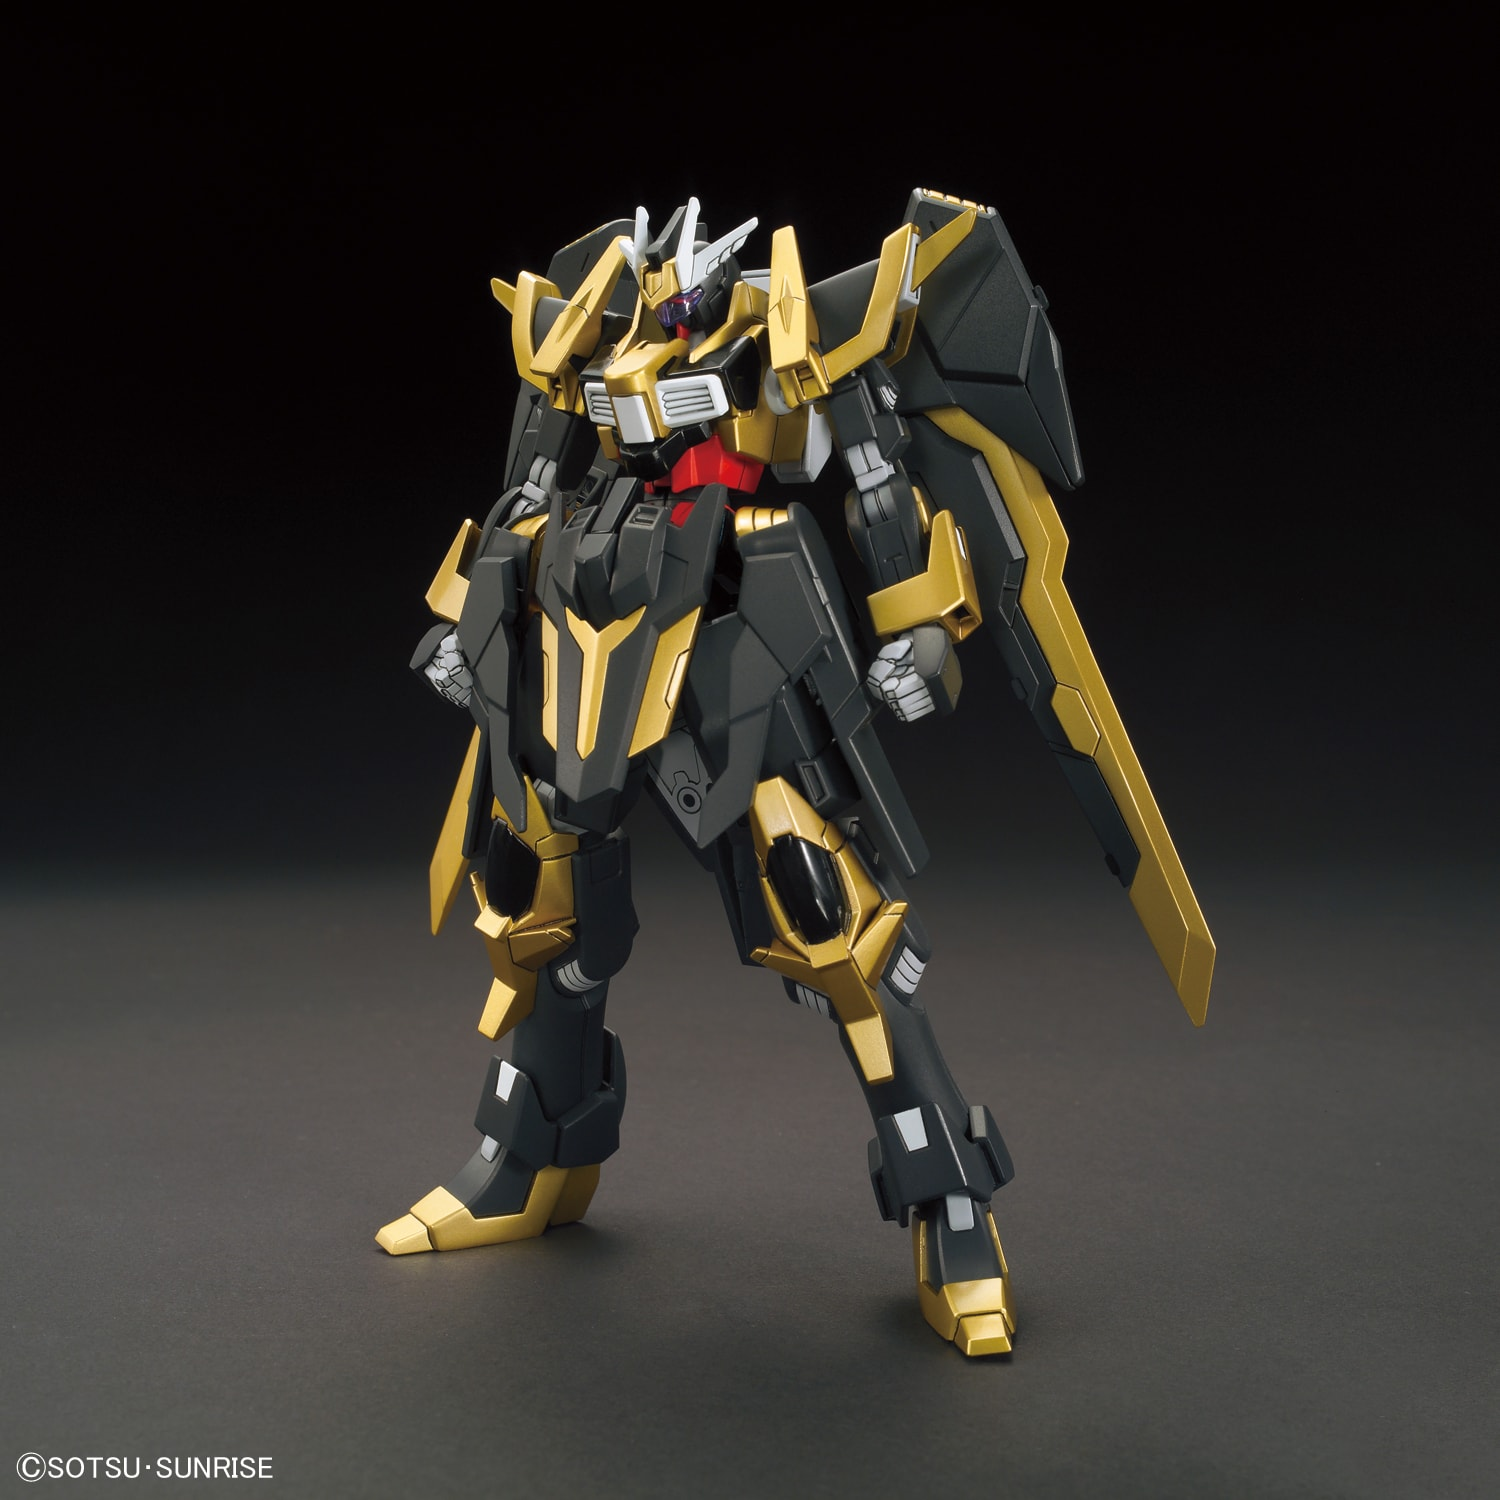 Gundam High Grade Build Fighters (1/144): #55 Gundam Schwarzritter